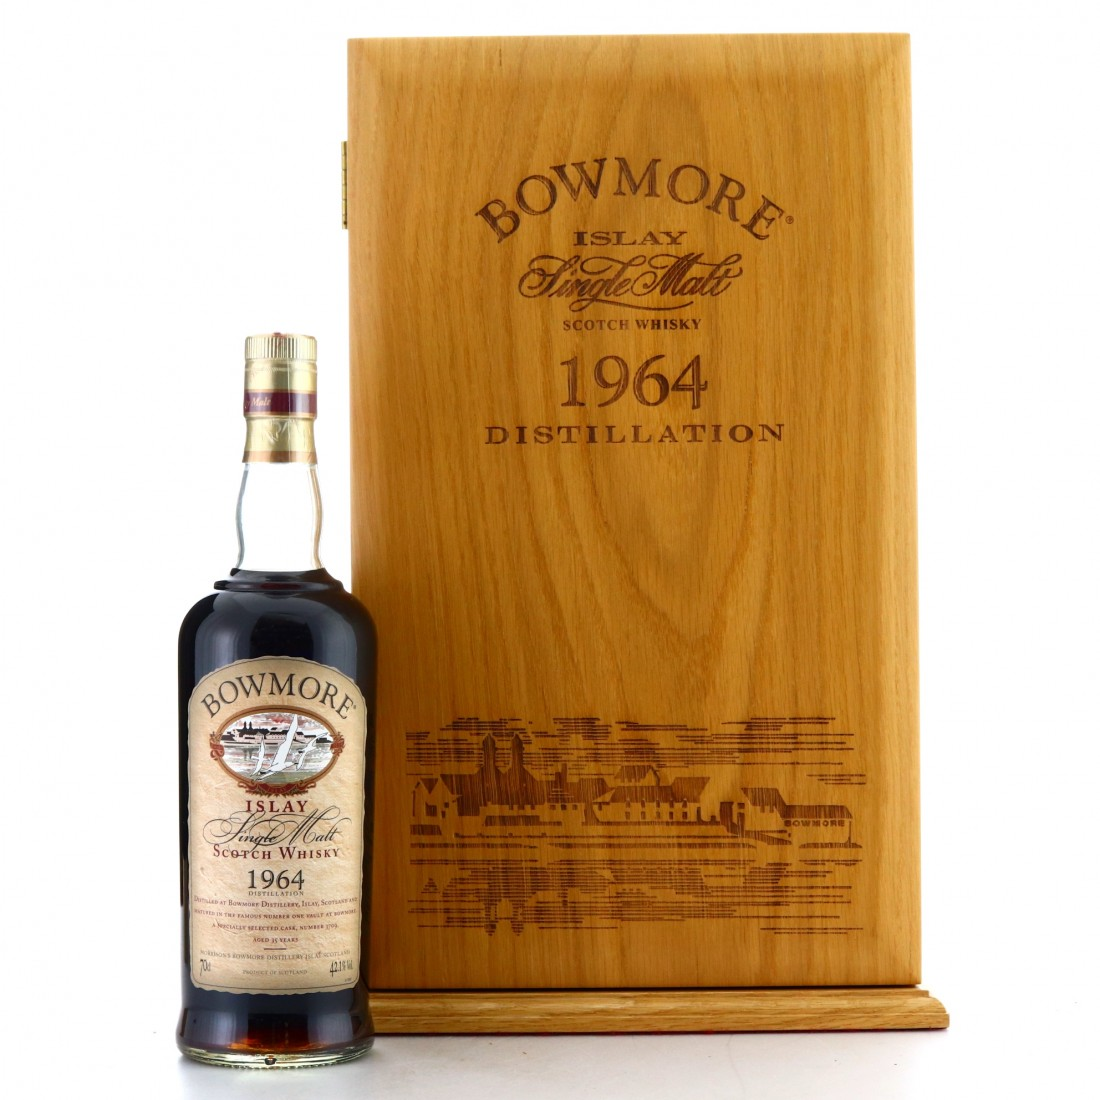 *Bowmore 1964 Single Cask 35 Year Old